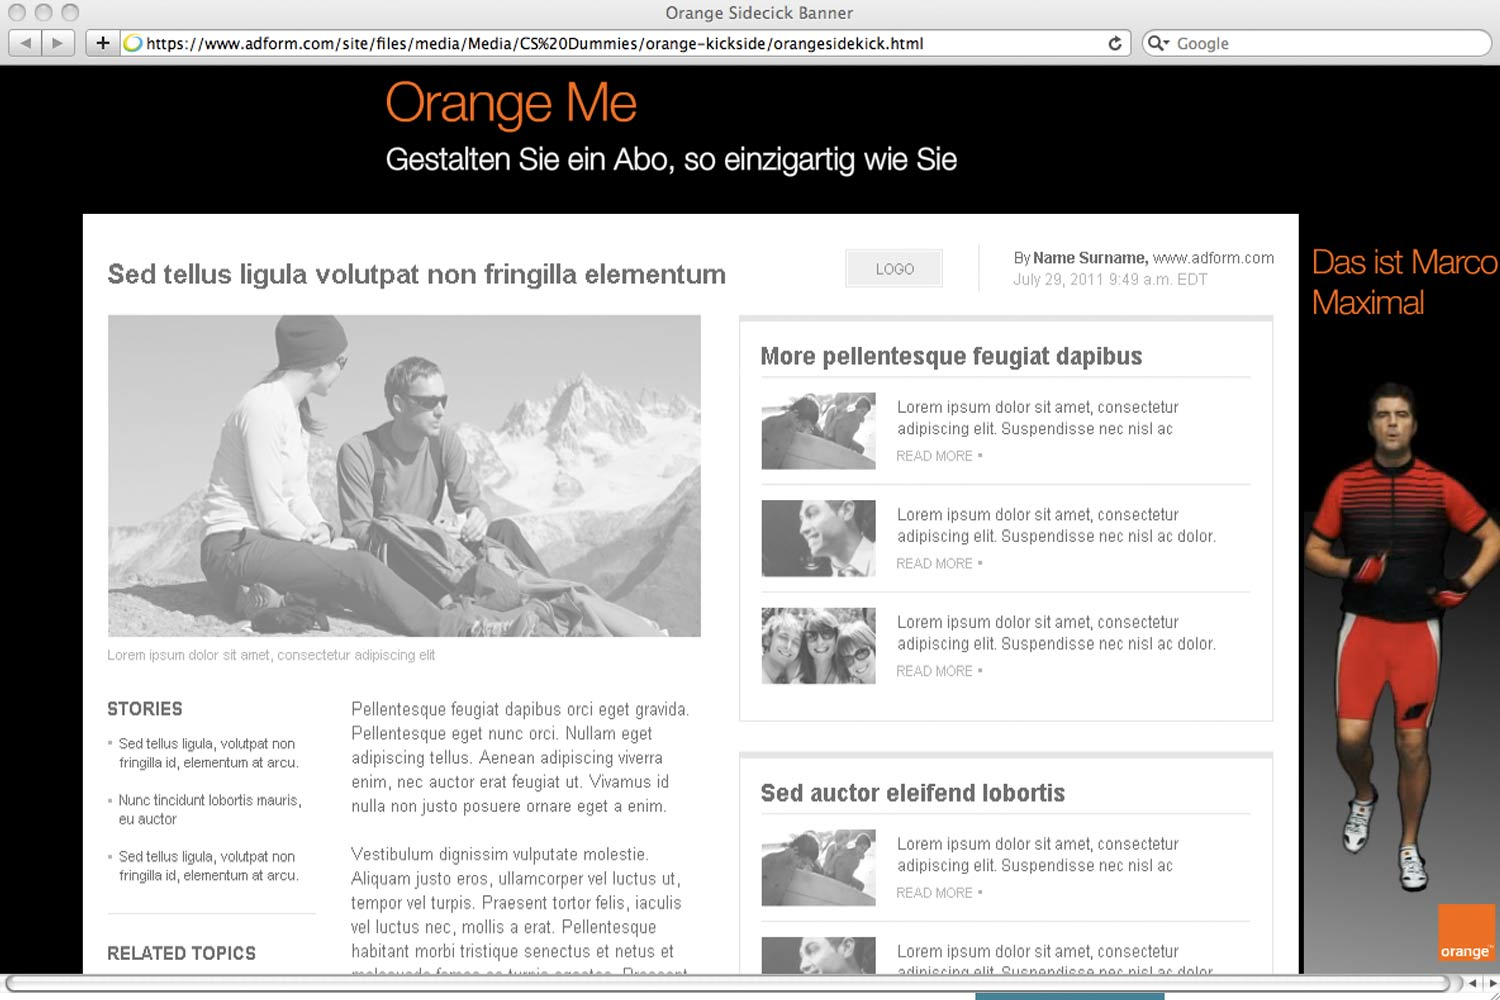 portfolio-web-banner-sidekick-orange-1.jpg